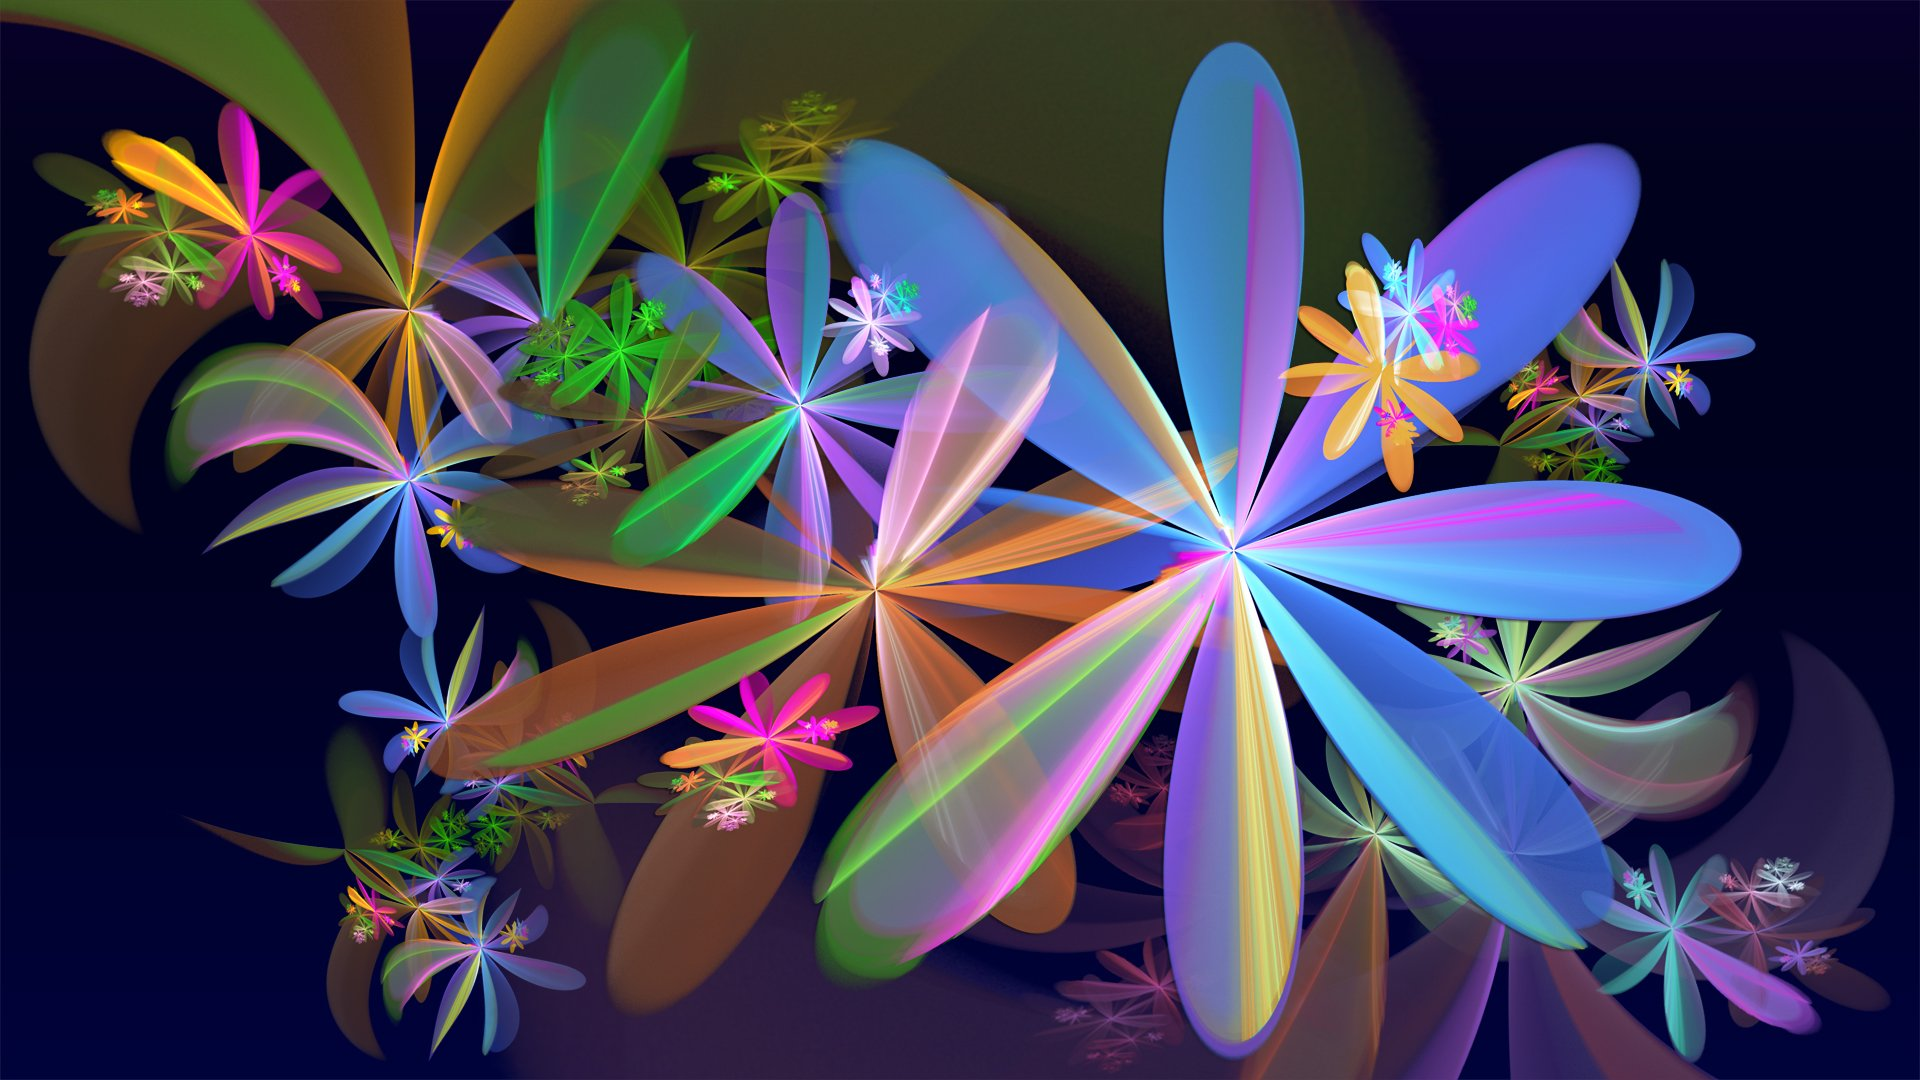 Wallpapers Wallpapers Crazy Daisy Backgrounds Crazy Daisy Hd 1920x1080